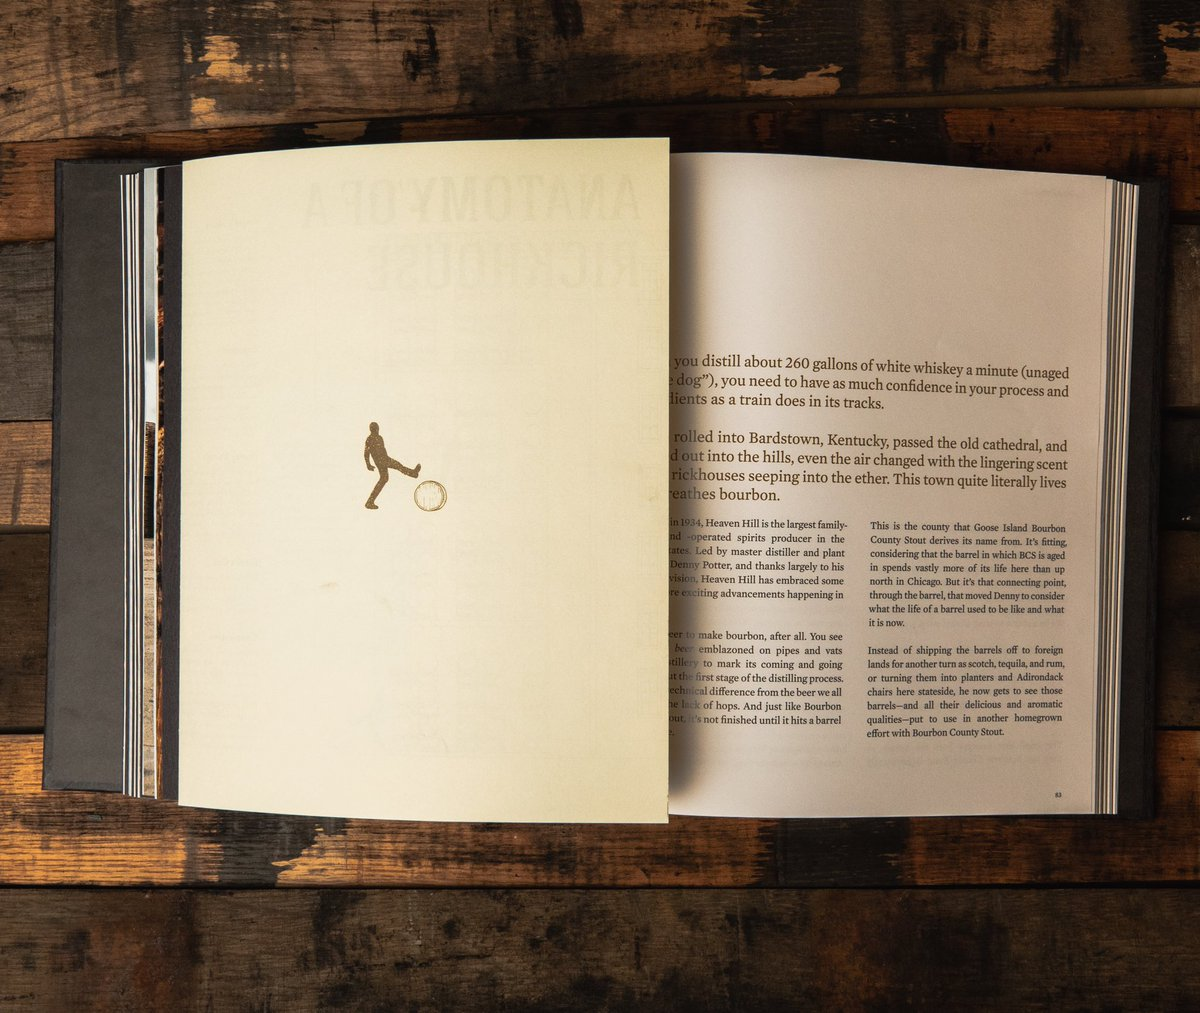 image of the inside of the book Grit & Grain courtesy of Goose Island Beer Co.